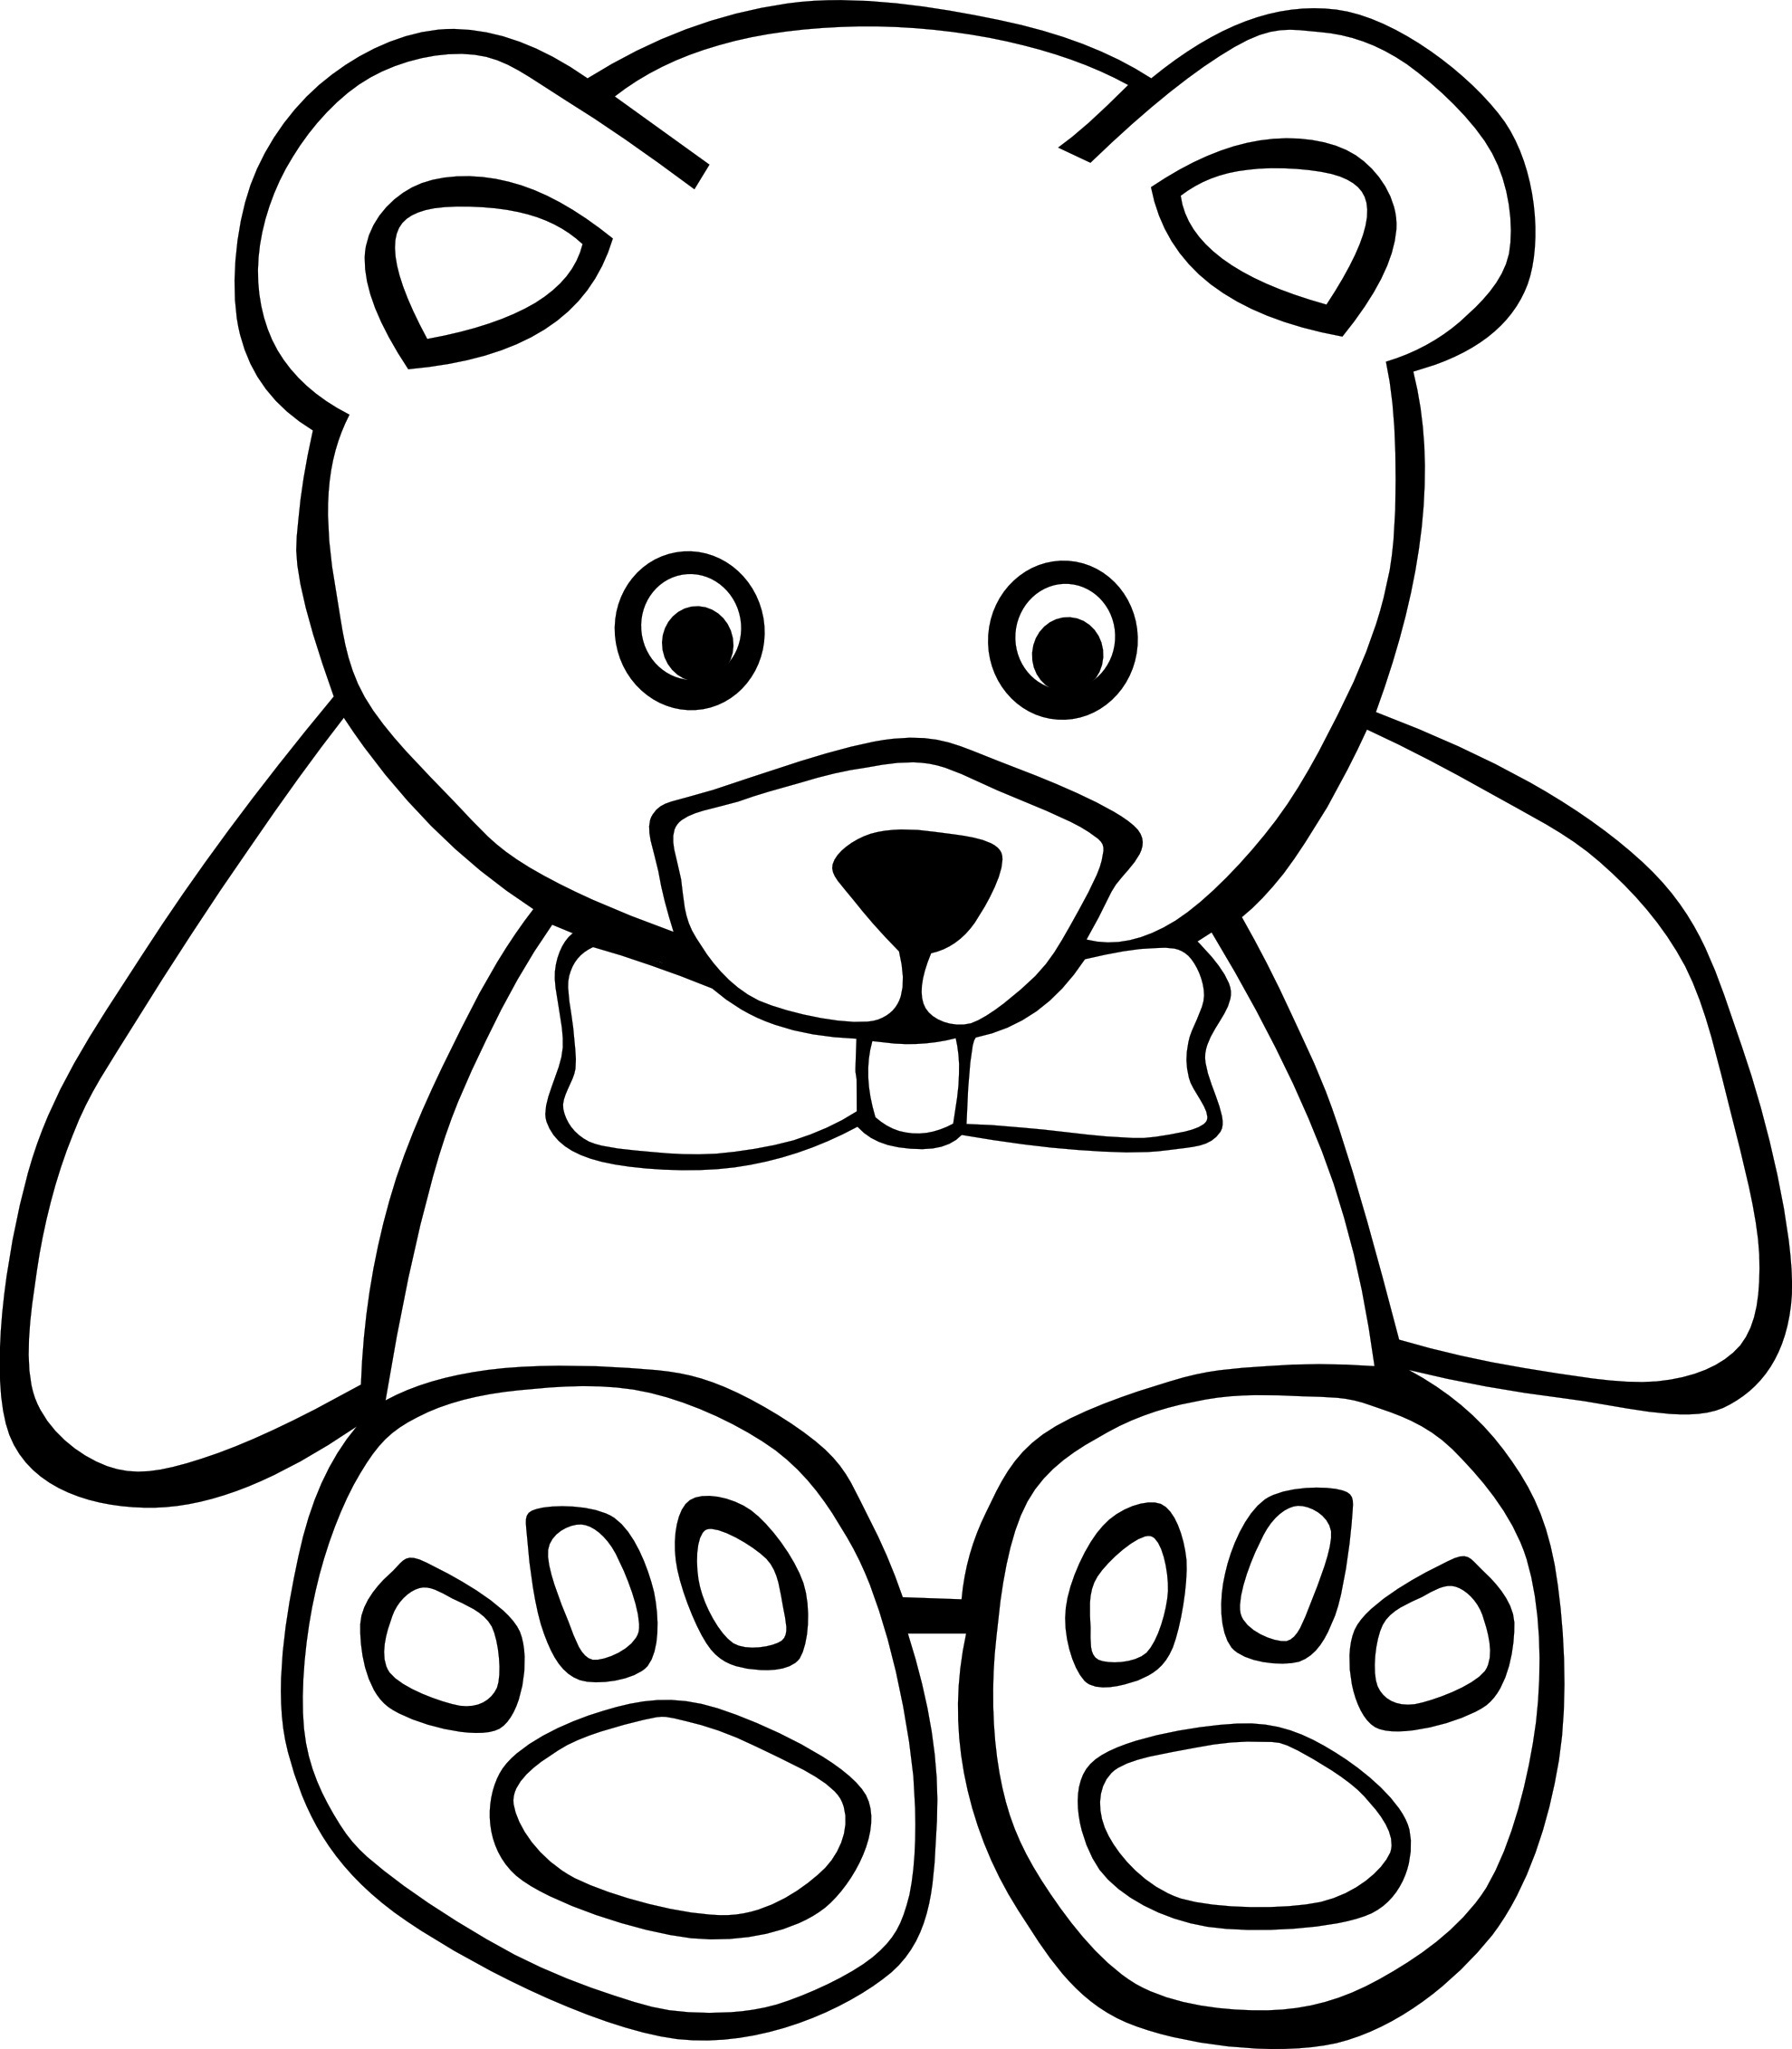 Superbe Teddy Bear Coloring Pages Images